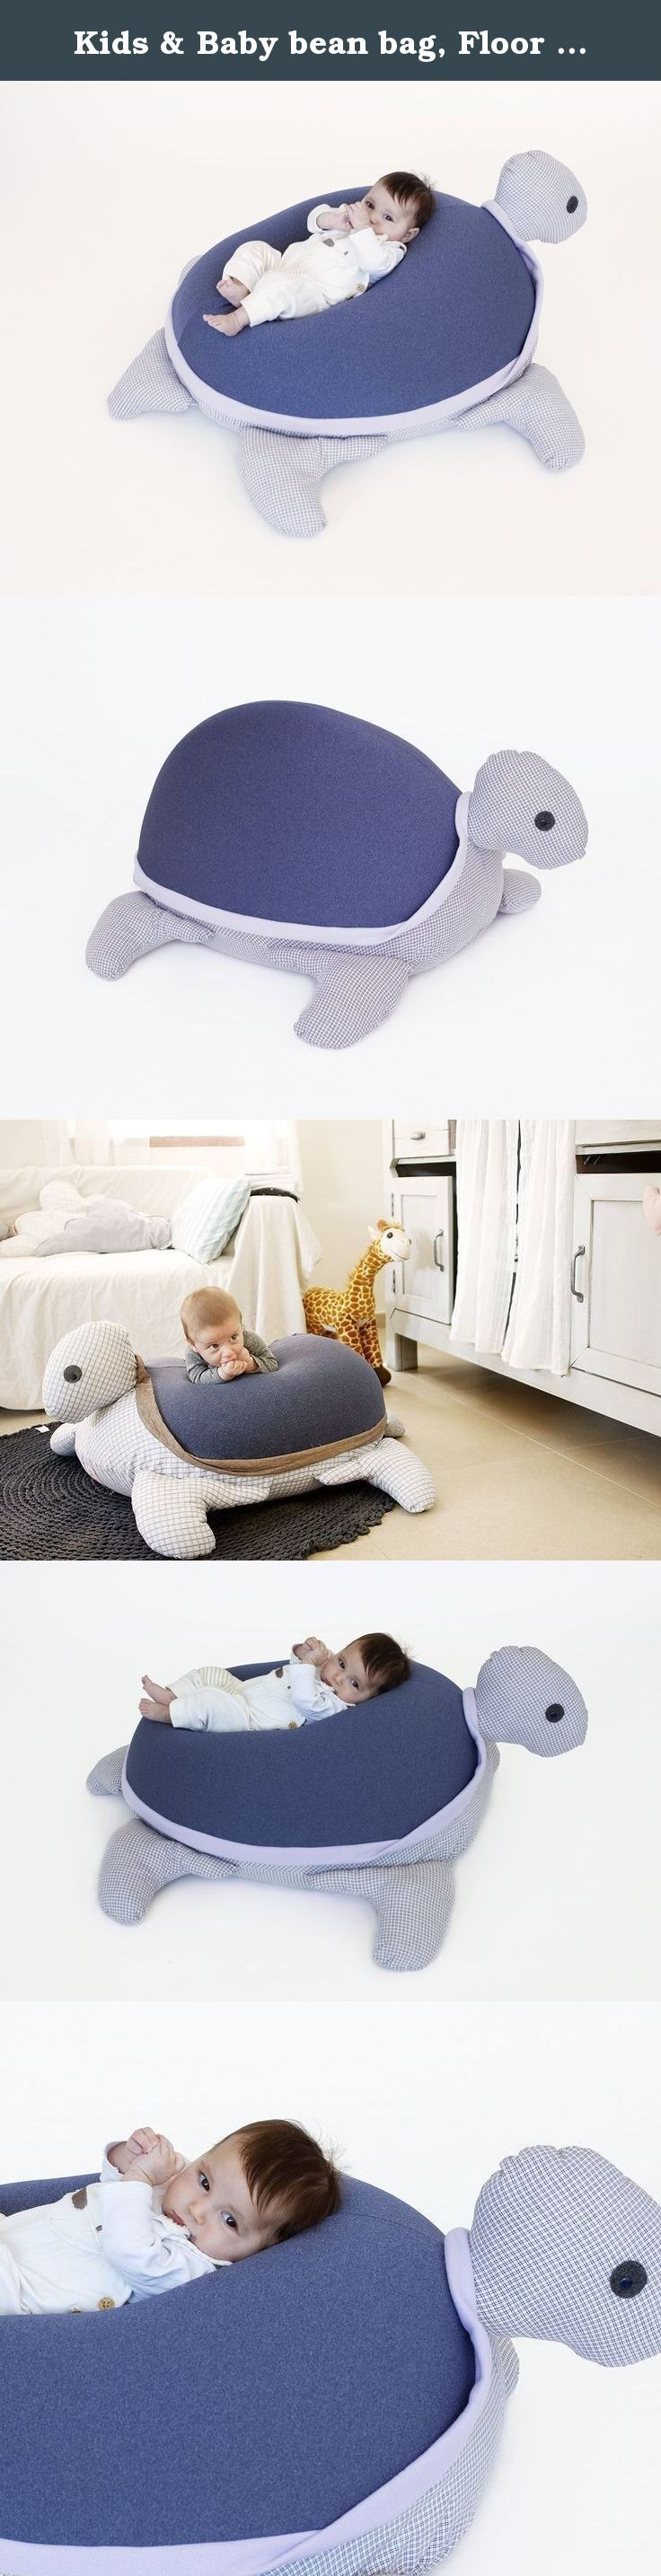 Kids & Baby bean bag, Floor pillow ,Giant animal shaped turtle Bean bag chair, Jeans color, with an internal pillow for easy wash and maintenance. This is an amazing Baby gift idea for a baby shower ,a giant turtle bean bag to place as a nursery floor pillow. It is soft and cuddly, fun to lean on, relax and a good bedtime story point. The flexibility of the Styrofoam beanbag fill, adjusts beautifully to the body, that's why the turtle bean bag is an excellent gift for newborn and toddlers...